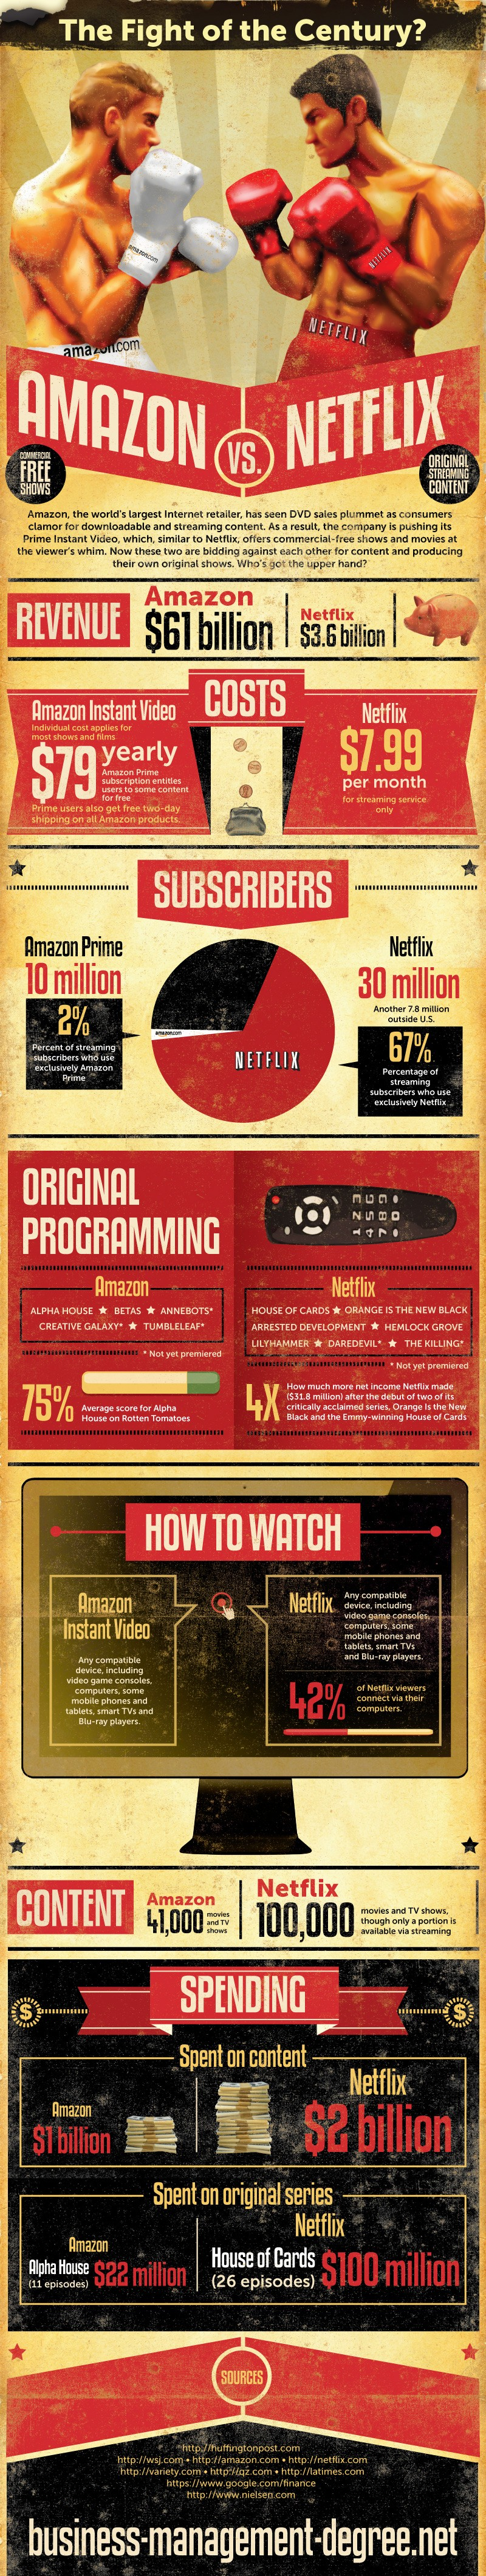 Amazon-vs-netflix-infographic